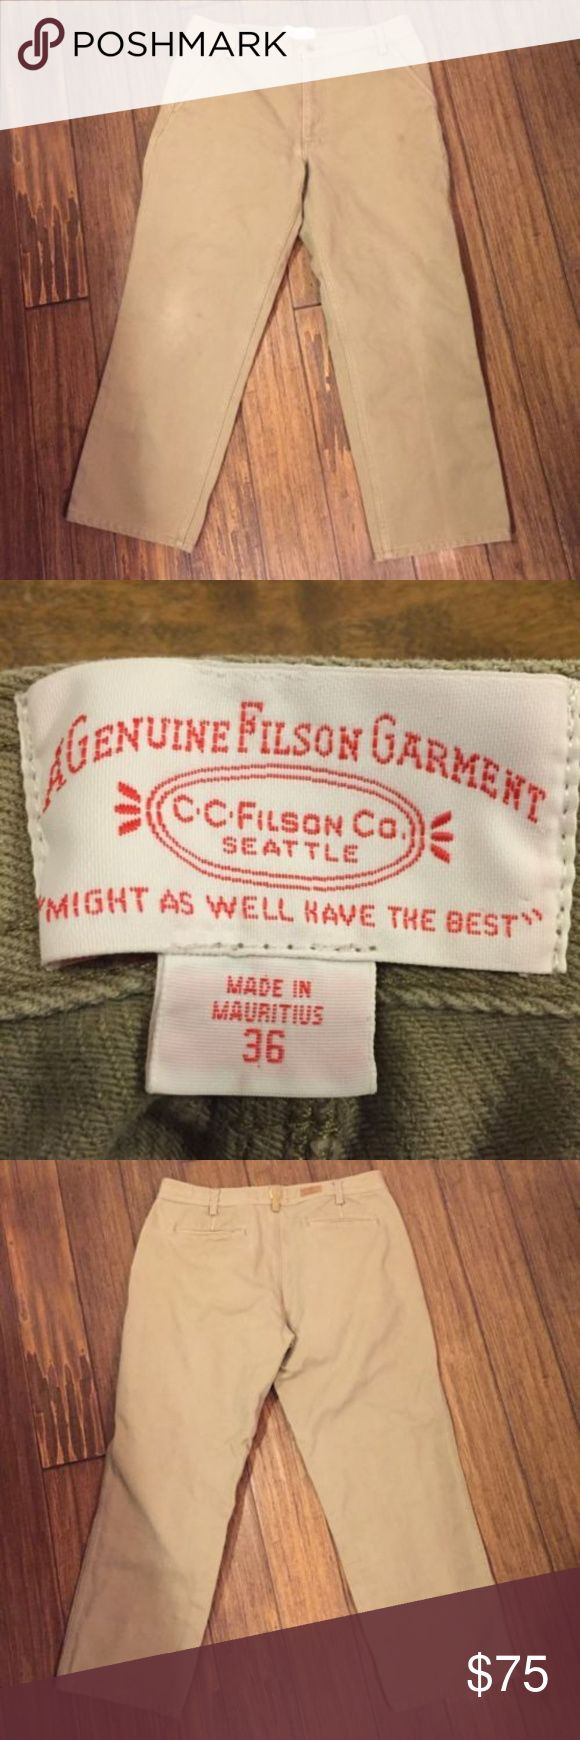 """Filson Khaki Tan Jean Work Pants 10176 Mens 36 C.C. Filson Co.Seattle  Style - 10176 Khaki Tan Jeans Work Pants 100% Cotton  Size - 36 Waist   Inseem - 28""""  Color - Khaki Tan    Excellent Like New Pre-Owned Condition No Rips, Holes, or Damage Filson Jeans Relaxed"""